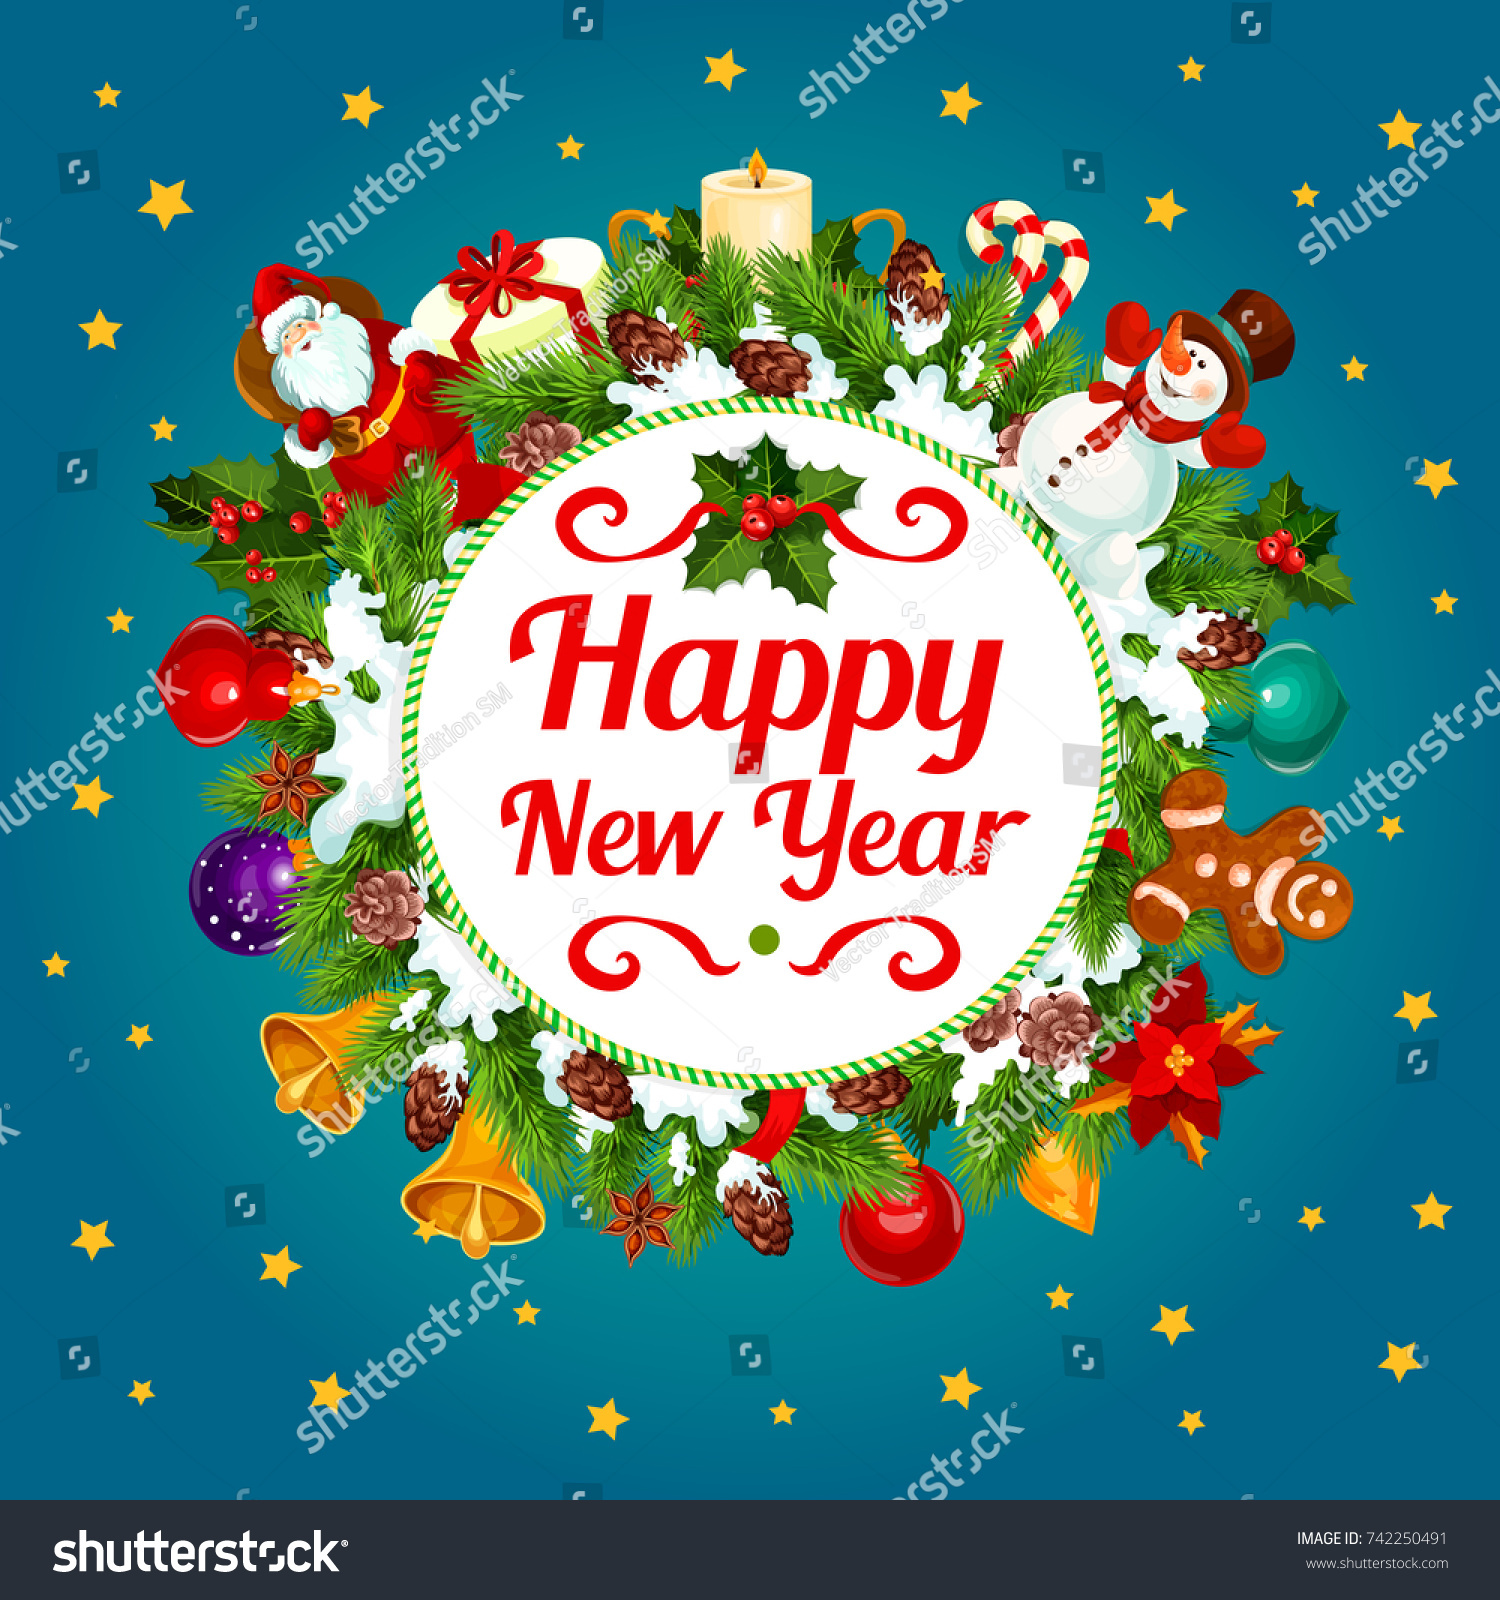 Happy New Year Greeting Card Design Stock Vector 742250491 ...